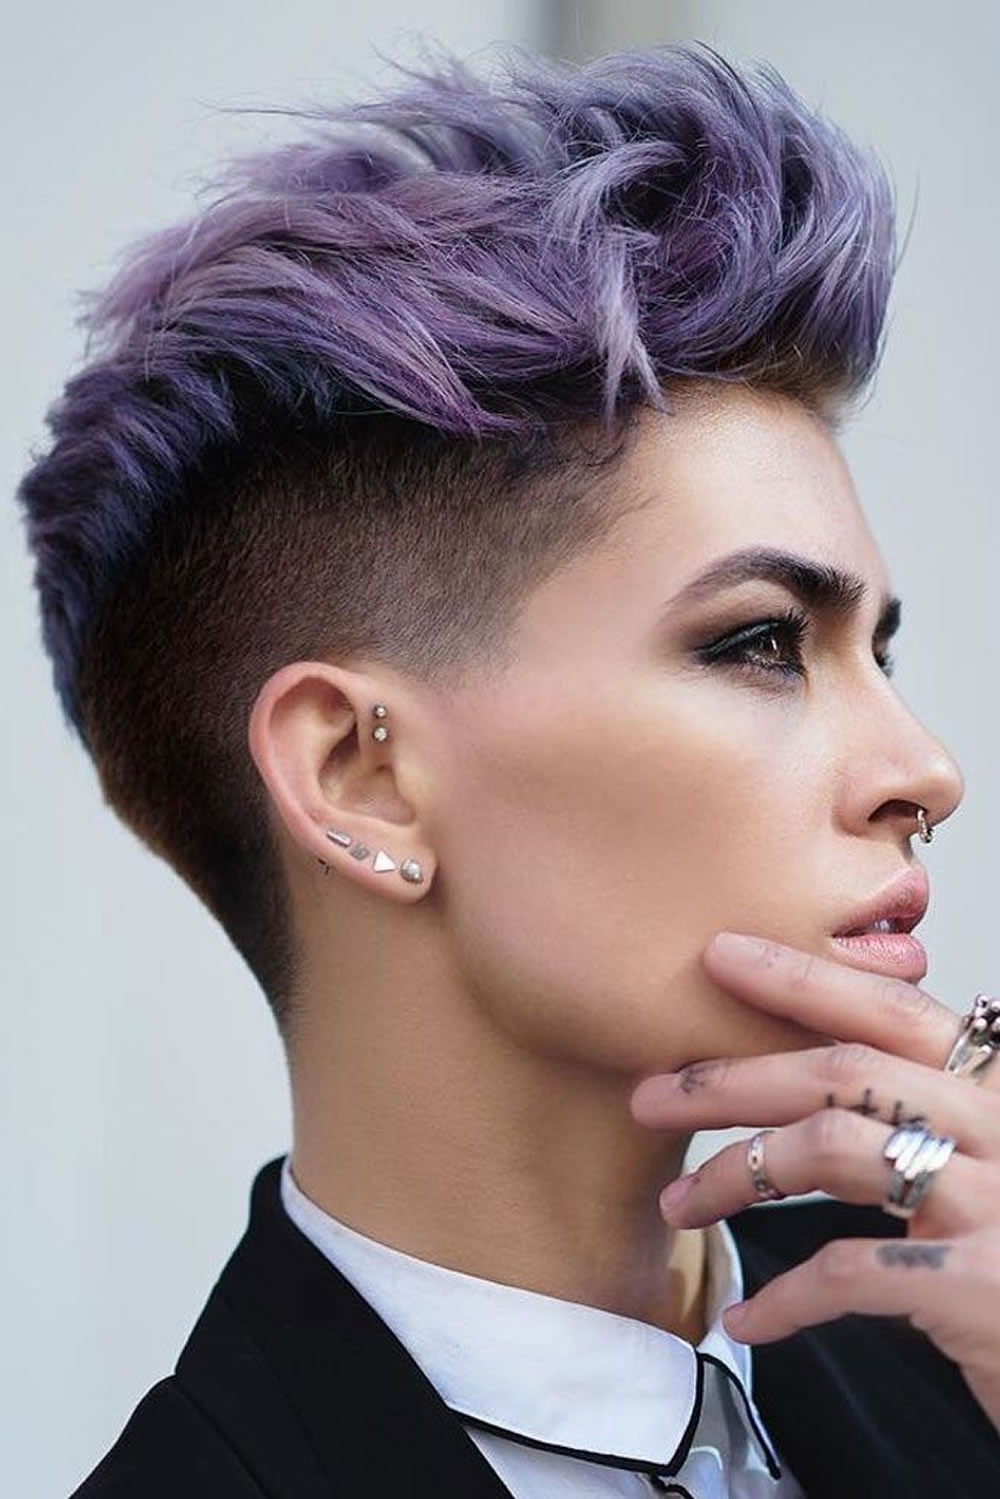 Undercut Pixie Hairstyle  15 Ideas of Undercut Pixie Hairstyles